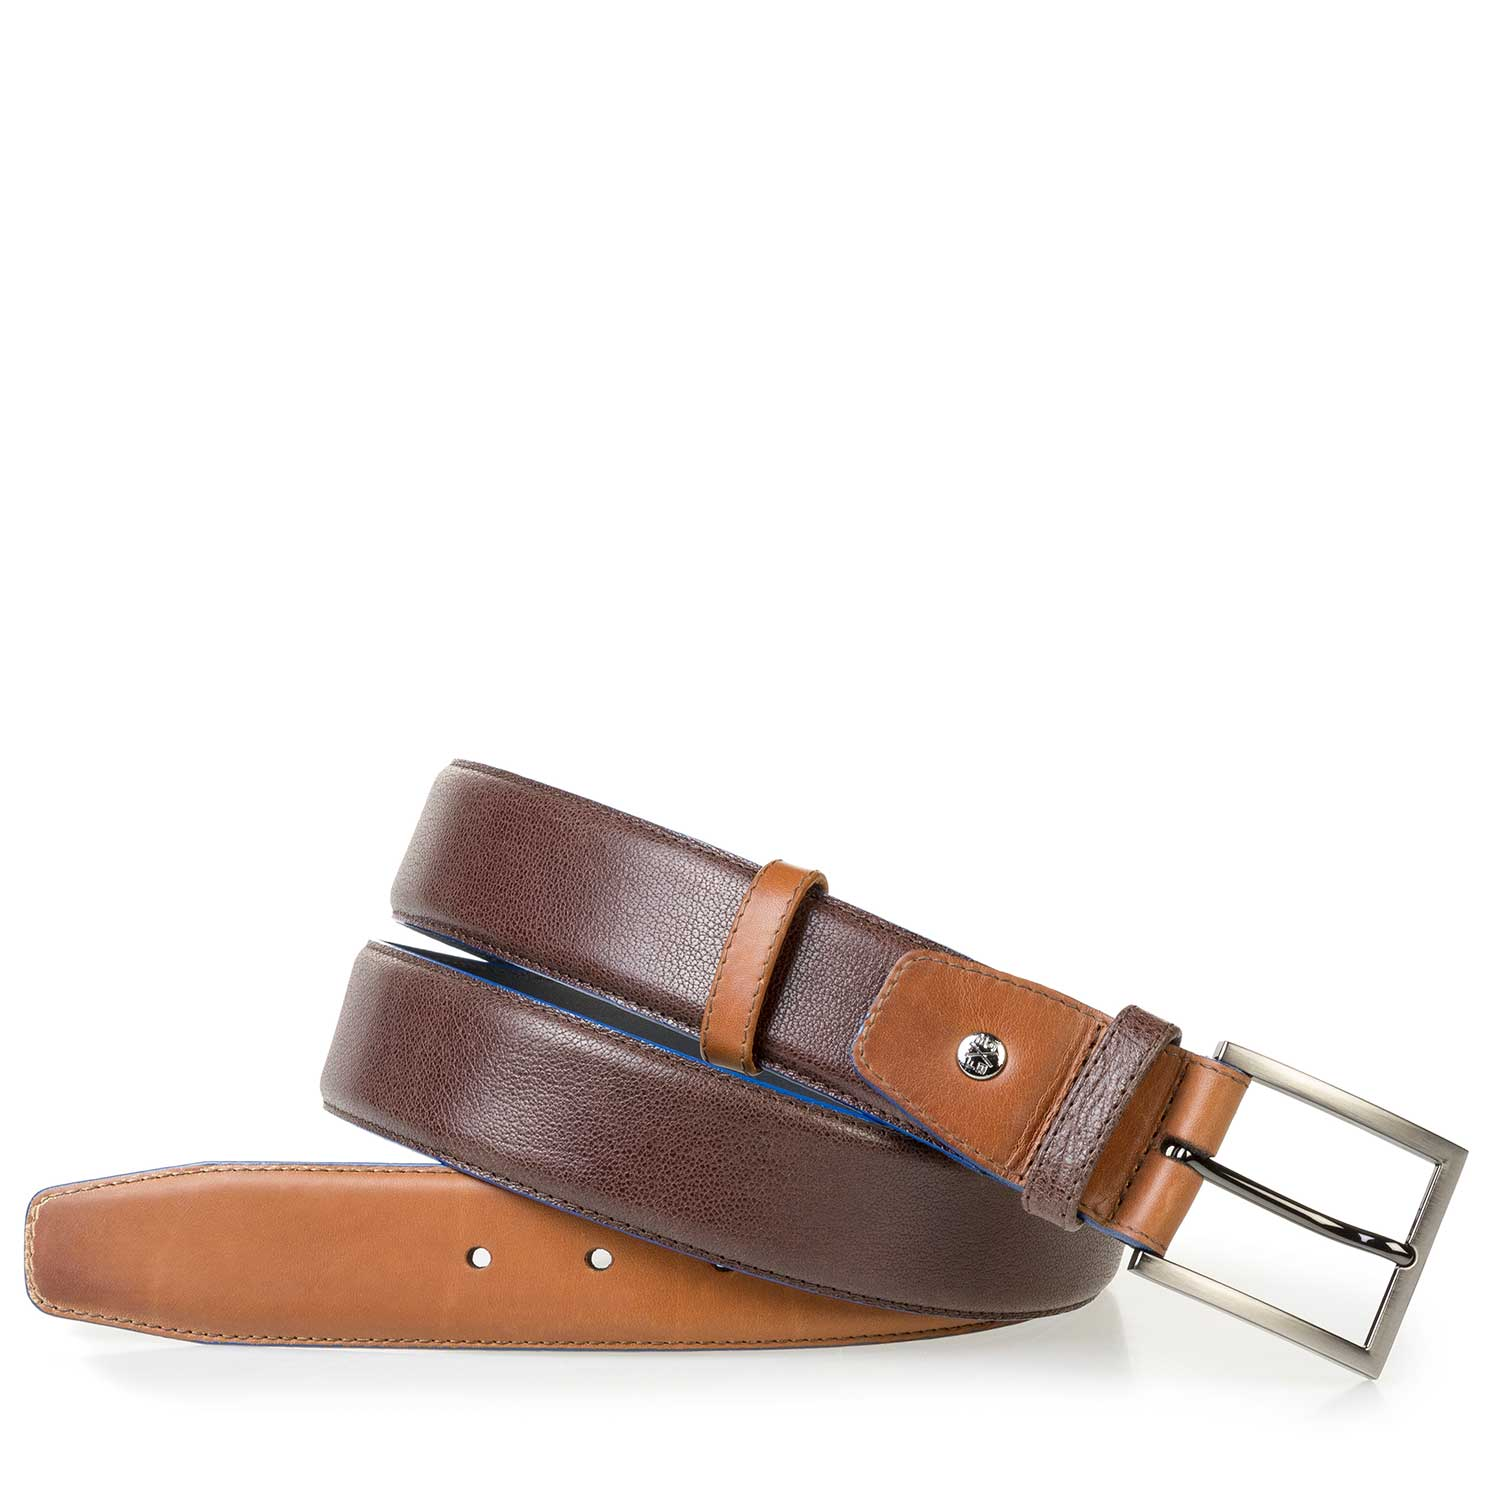 75052/05 - Cognac-coloured calf leather belt